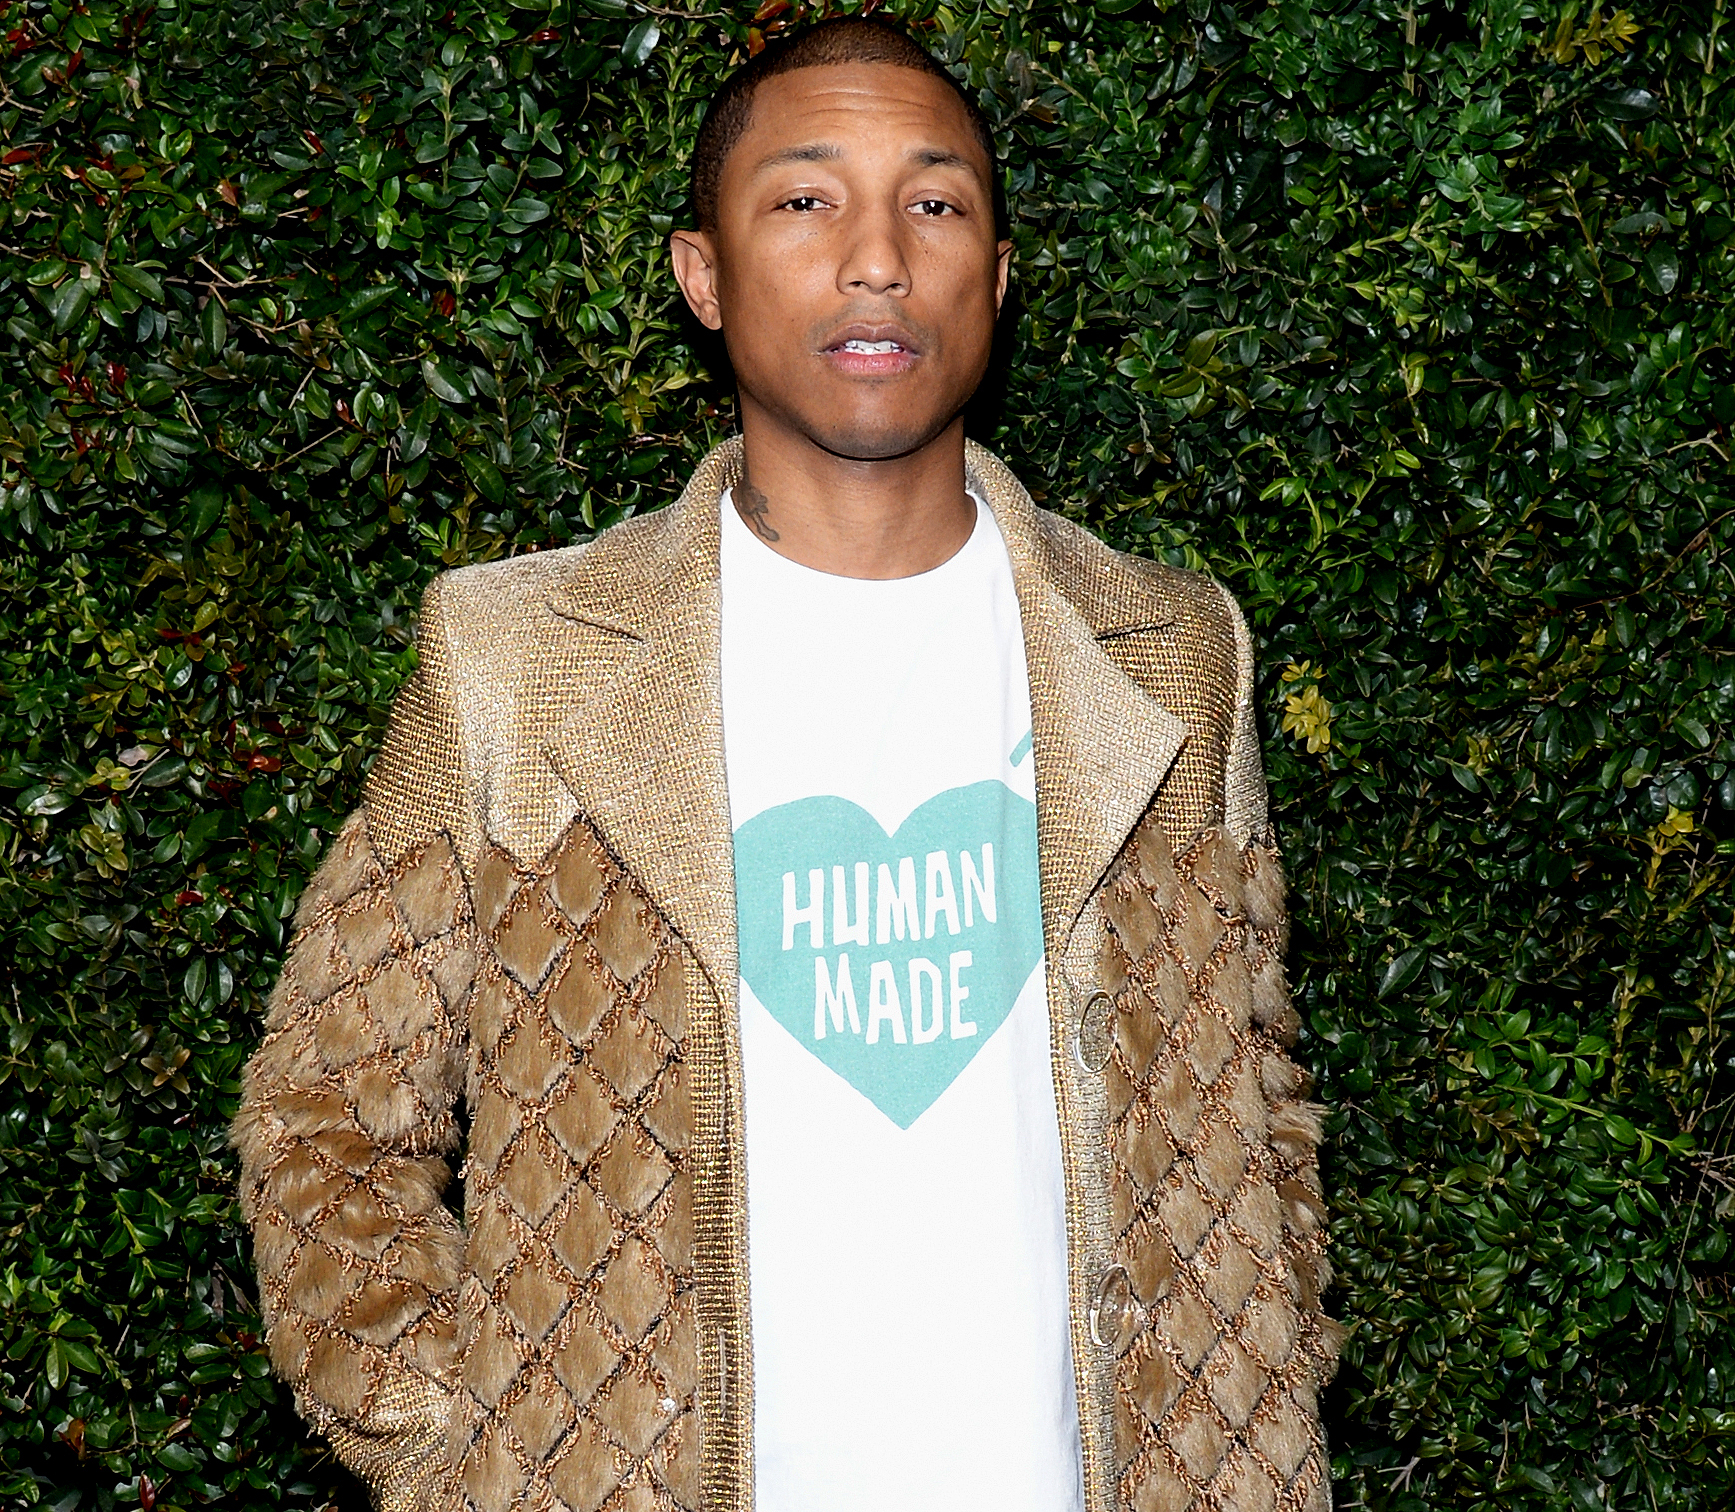 CHANEL Ambassador Pharrell Williams, wearing CHANEL, attends the Charles Finch and CHANEL Pre-Oscar Awards Dinner at Madeo Restaurant on February 25, 2017 in Beverly Hills, California.